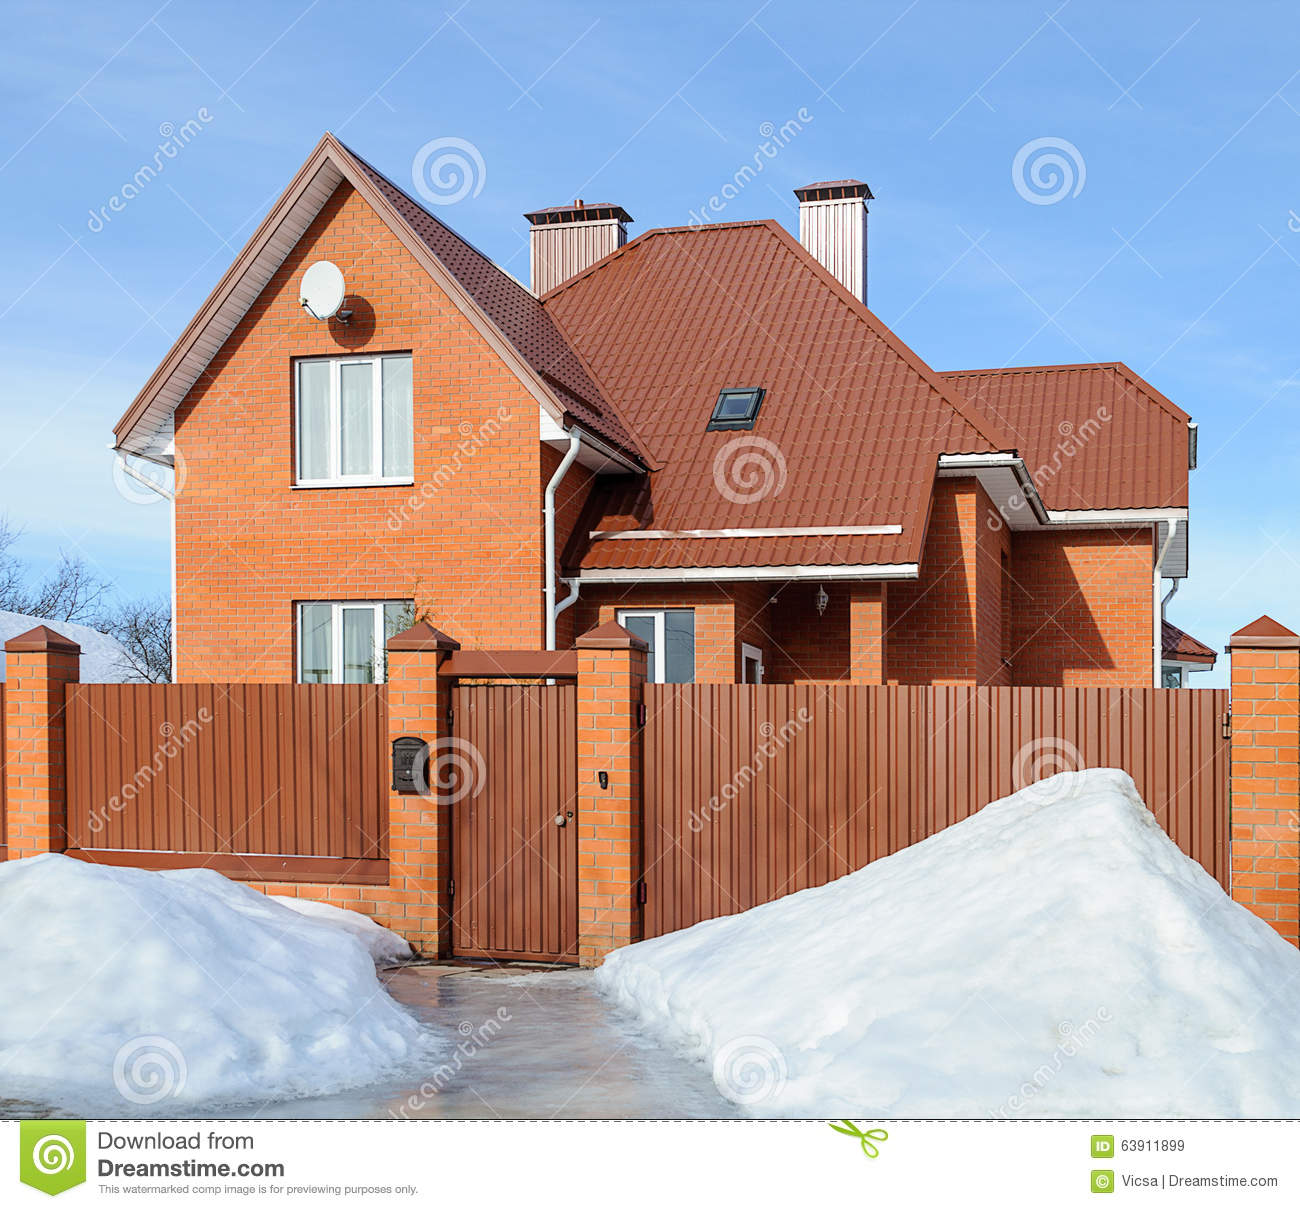 Modern House Red Roof: New Country Brick House In Winter Stock Image